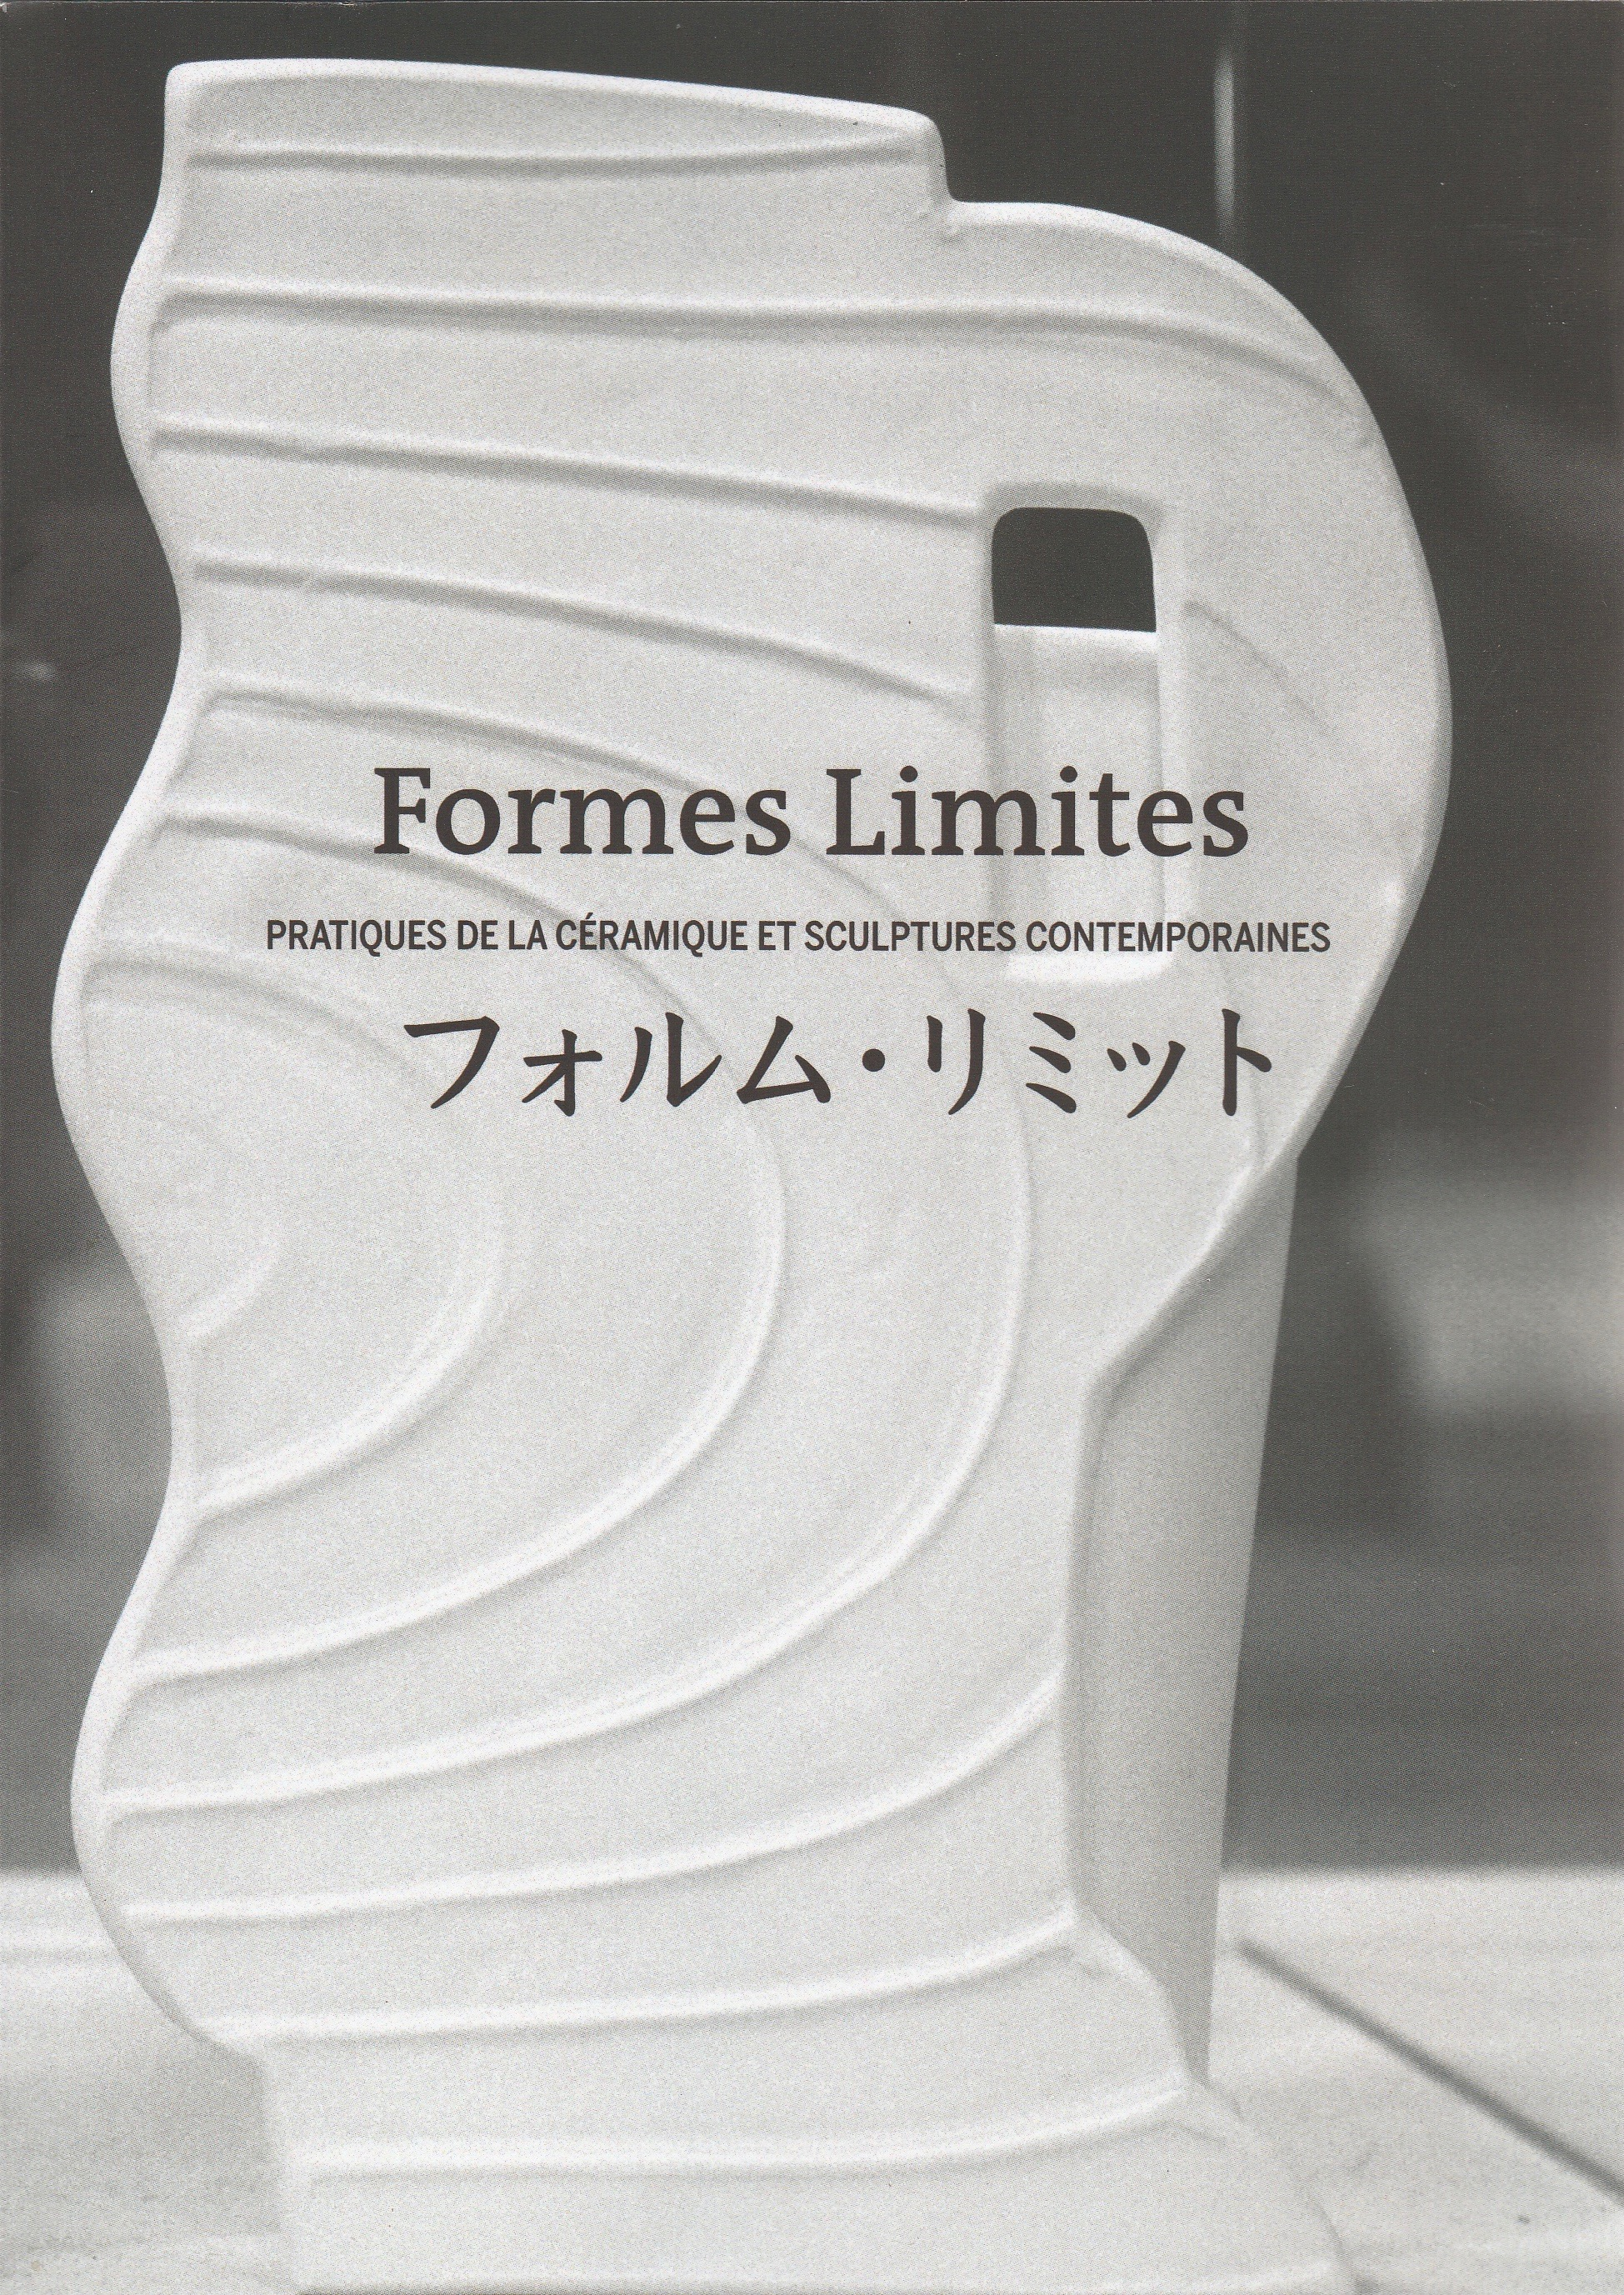 catalogue_formes_limites_1_2_(1).jpg